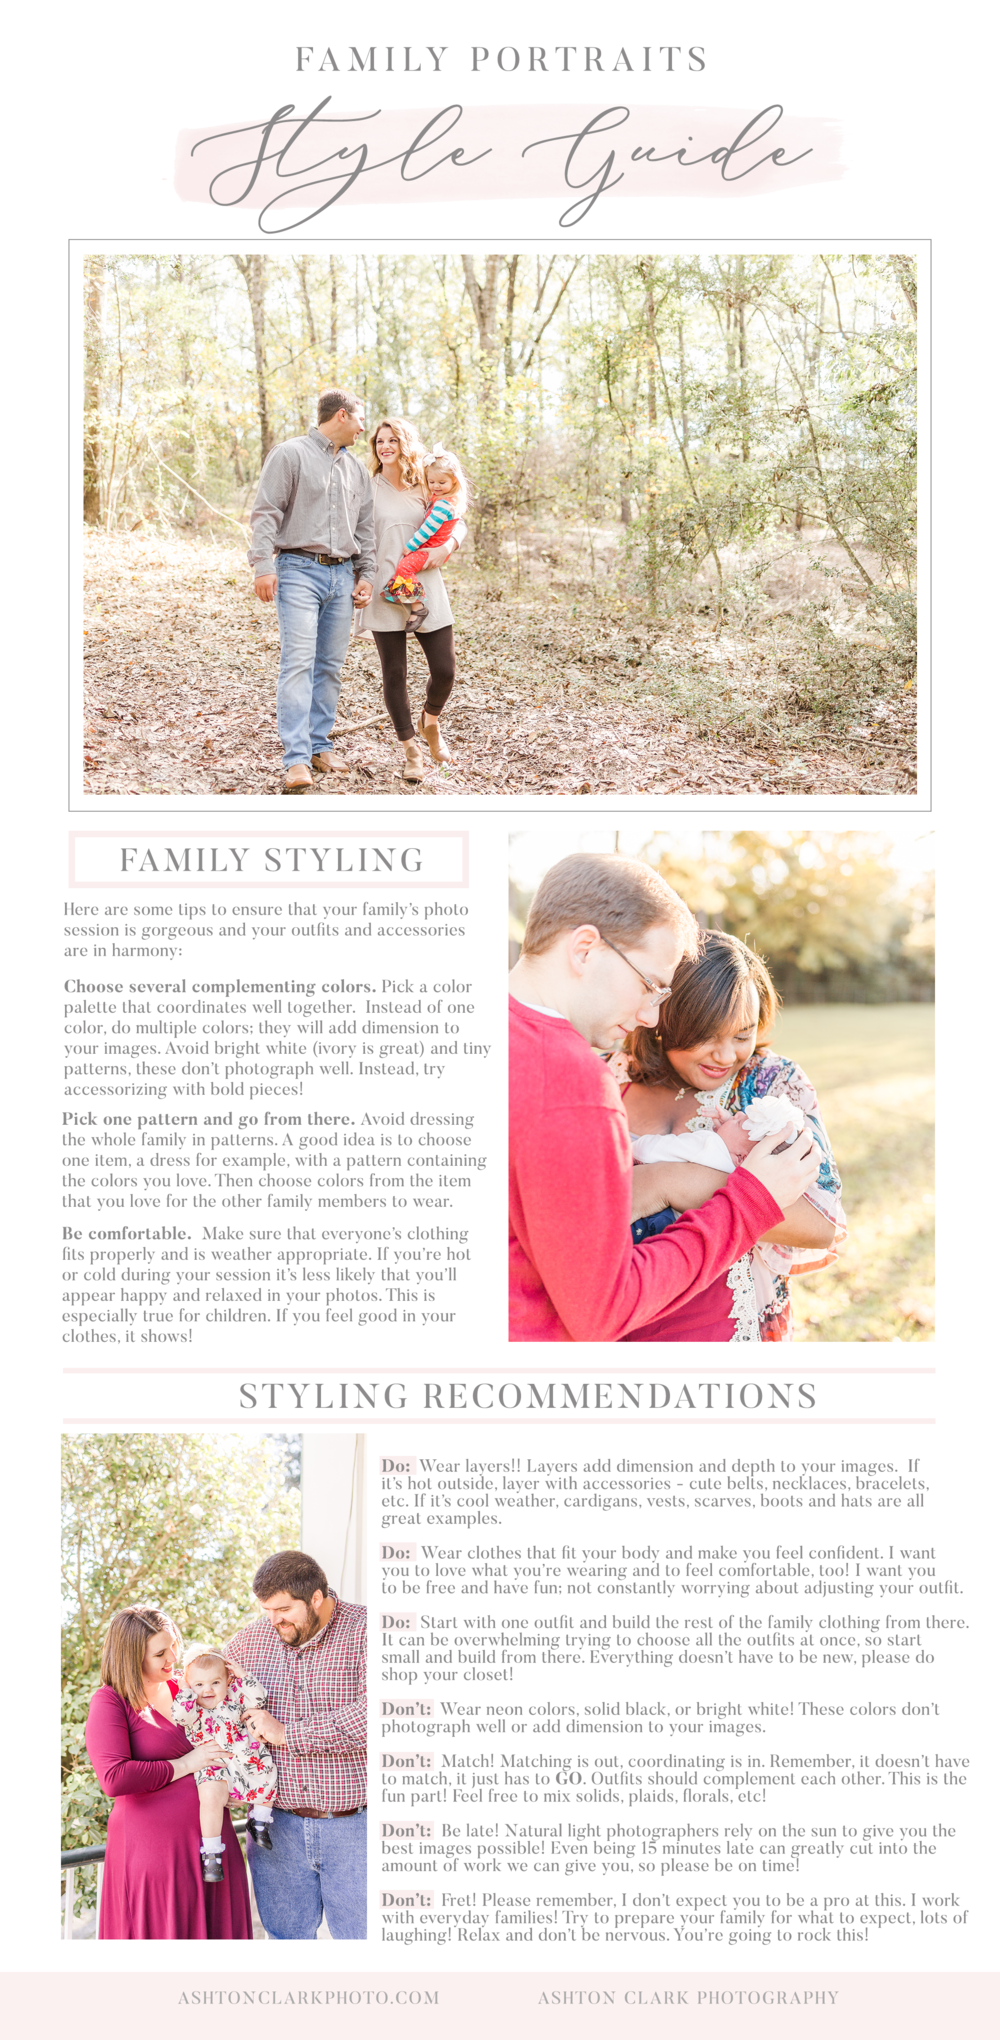 StyleGuide_Family.png